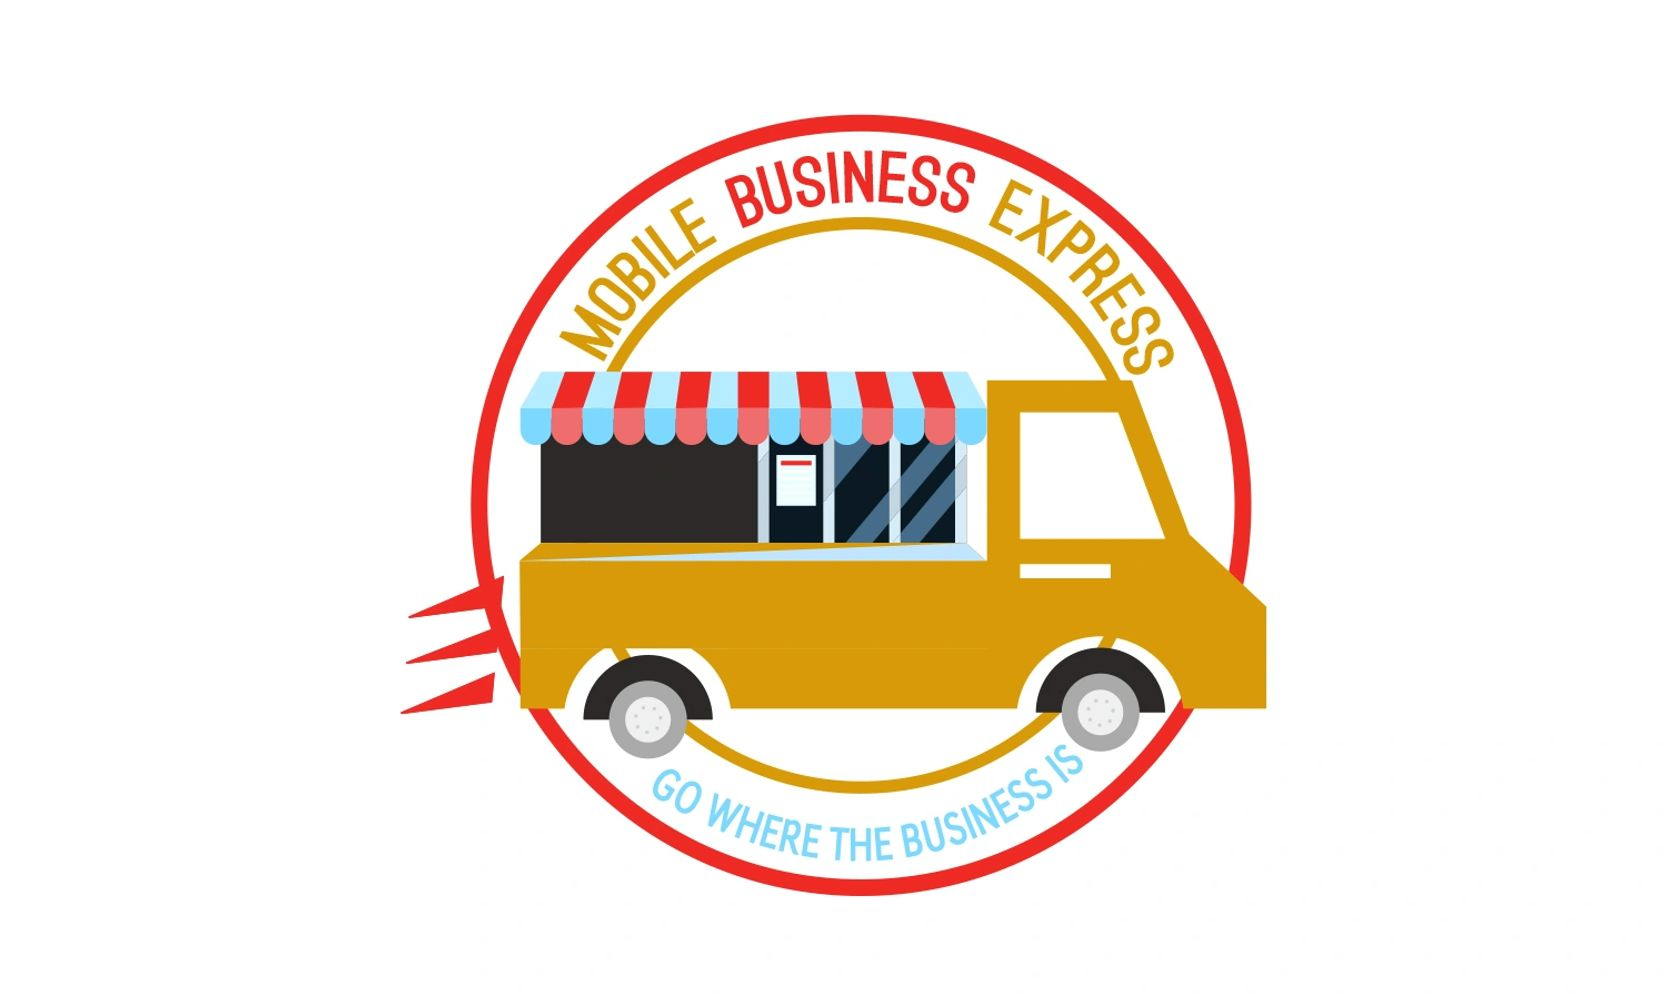 Mobile Business Express